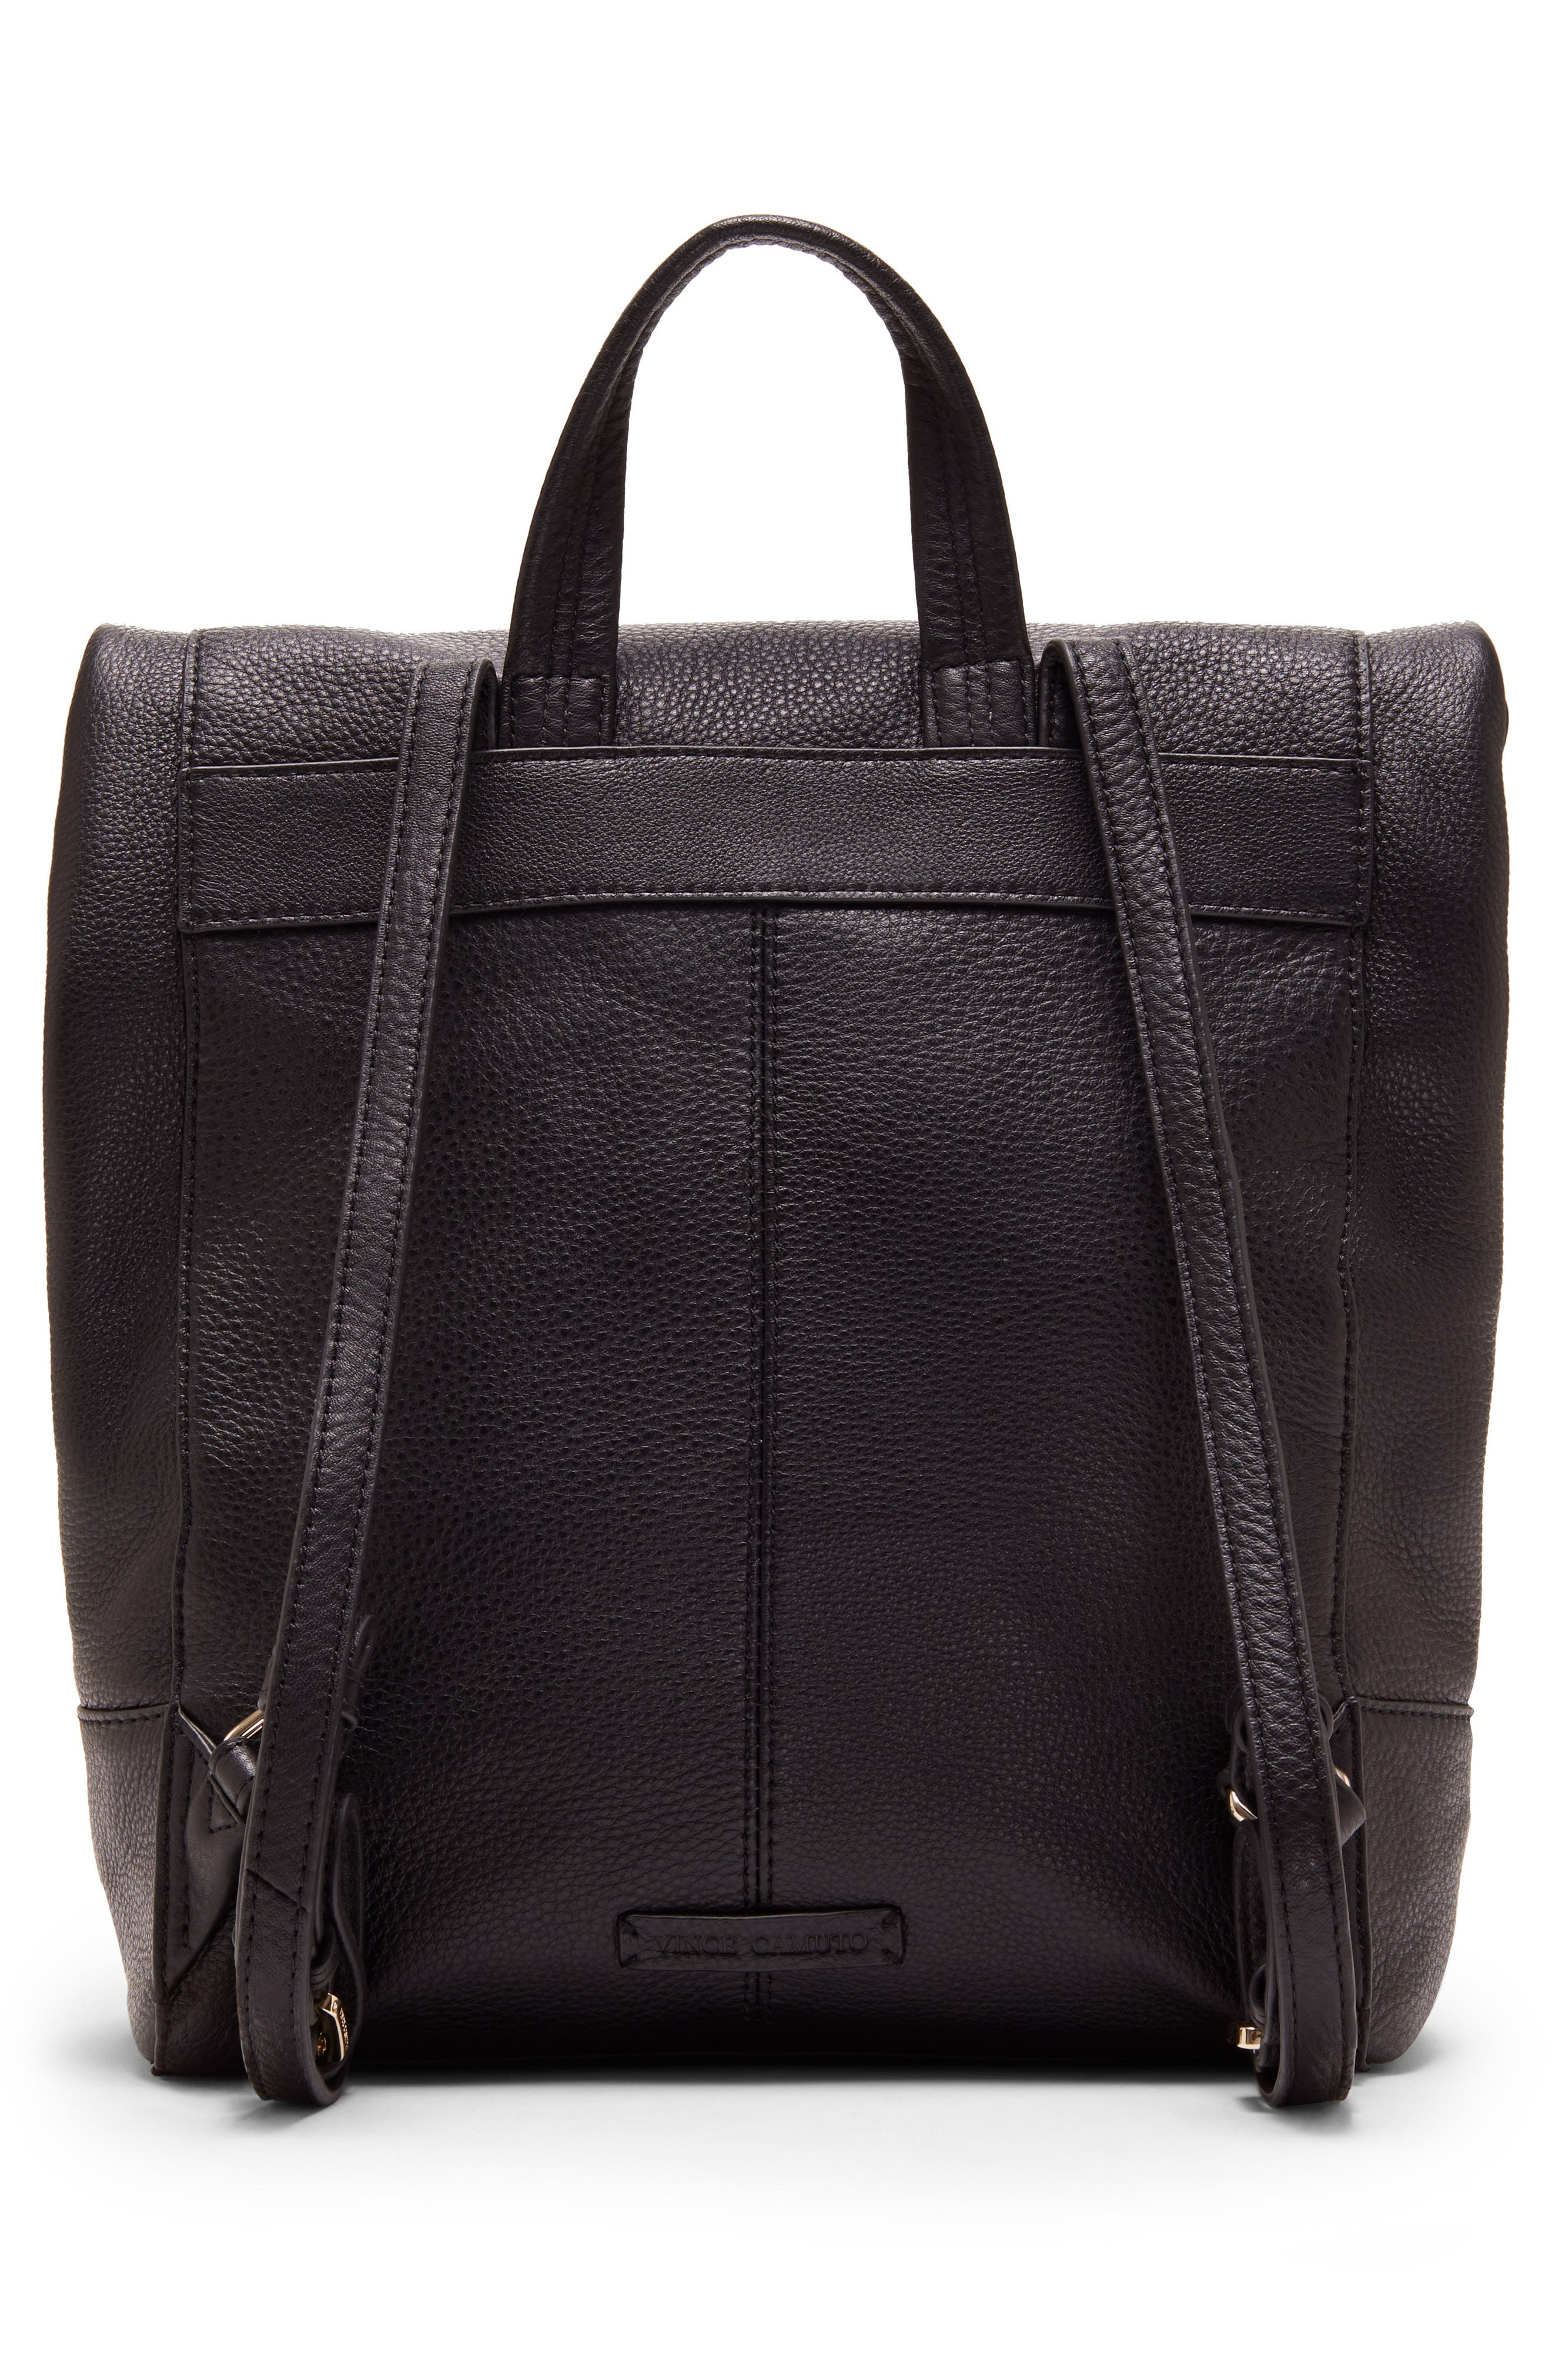 VINCE CAMUTO, Min Pebbled Leather Backpack, Alternate thumbnail 2, color, BLACK